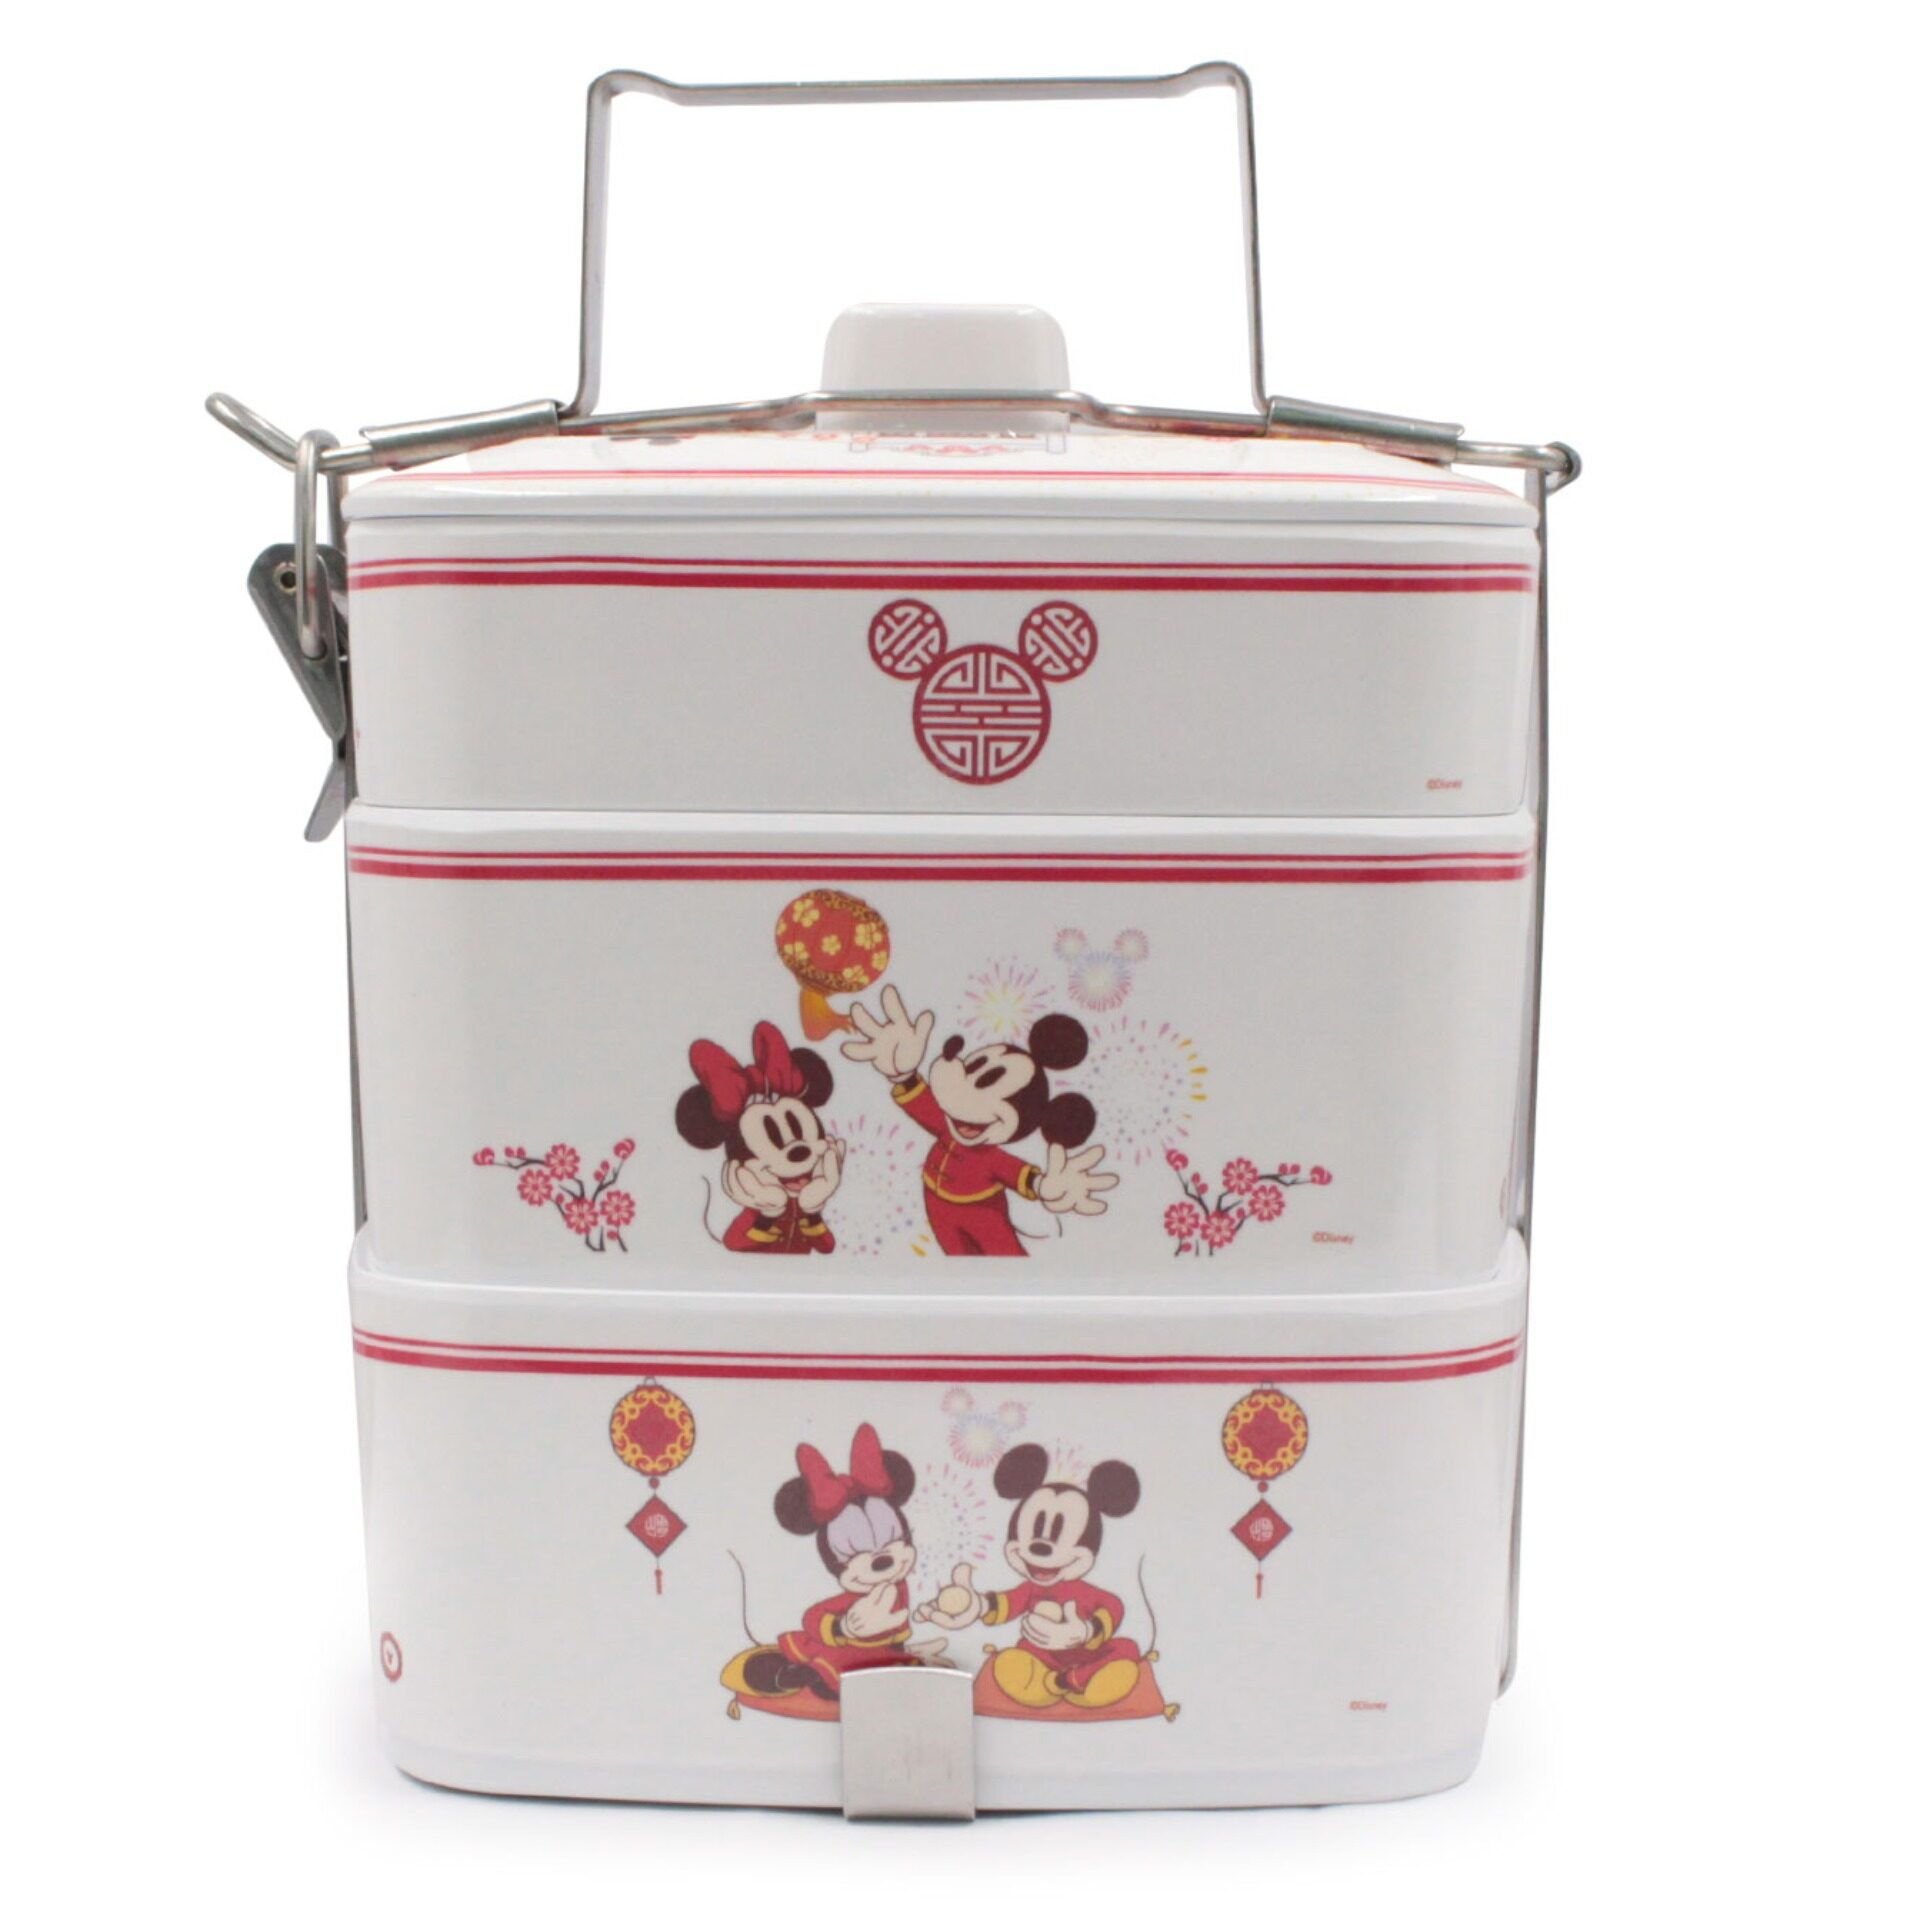 Disney Mickey & Minnie 3 Tier Food Tiffin with Compartments (Melamine)